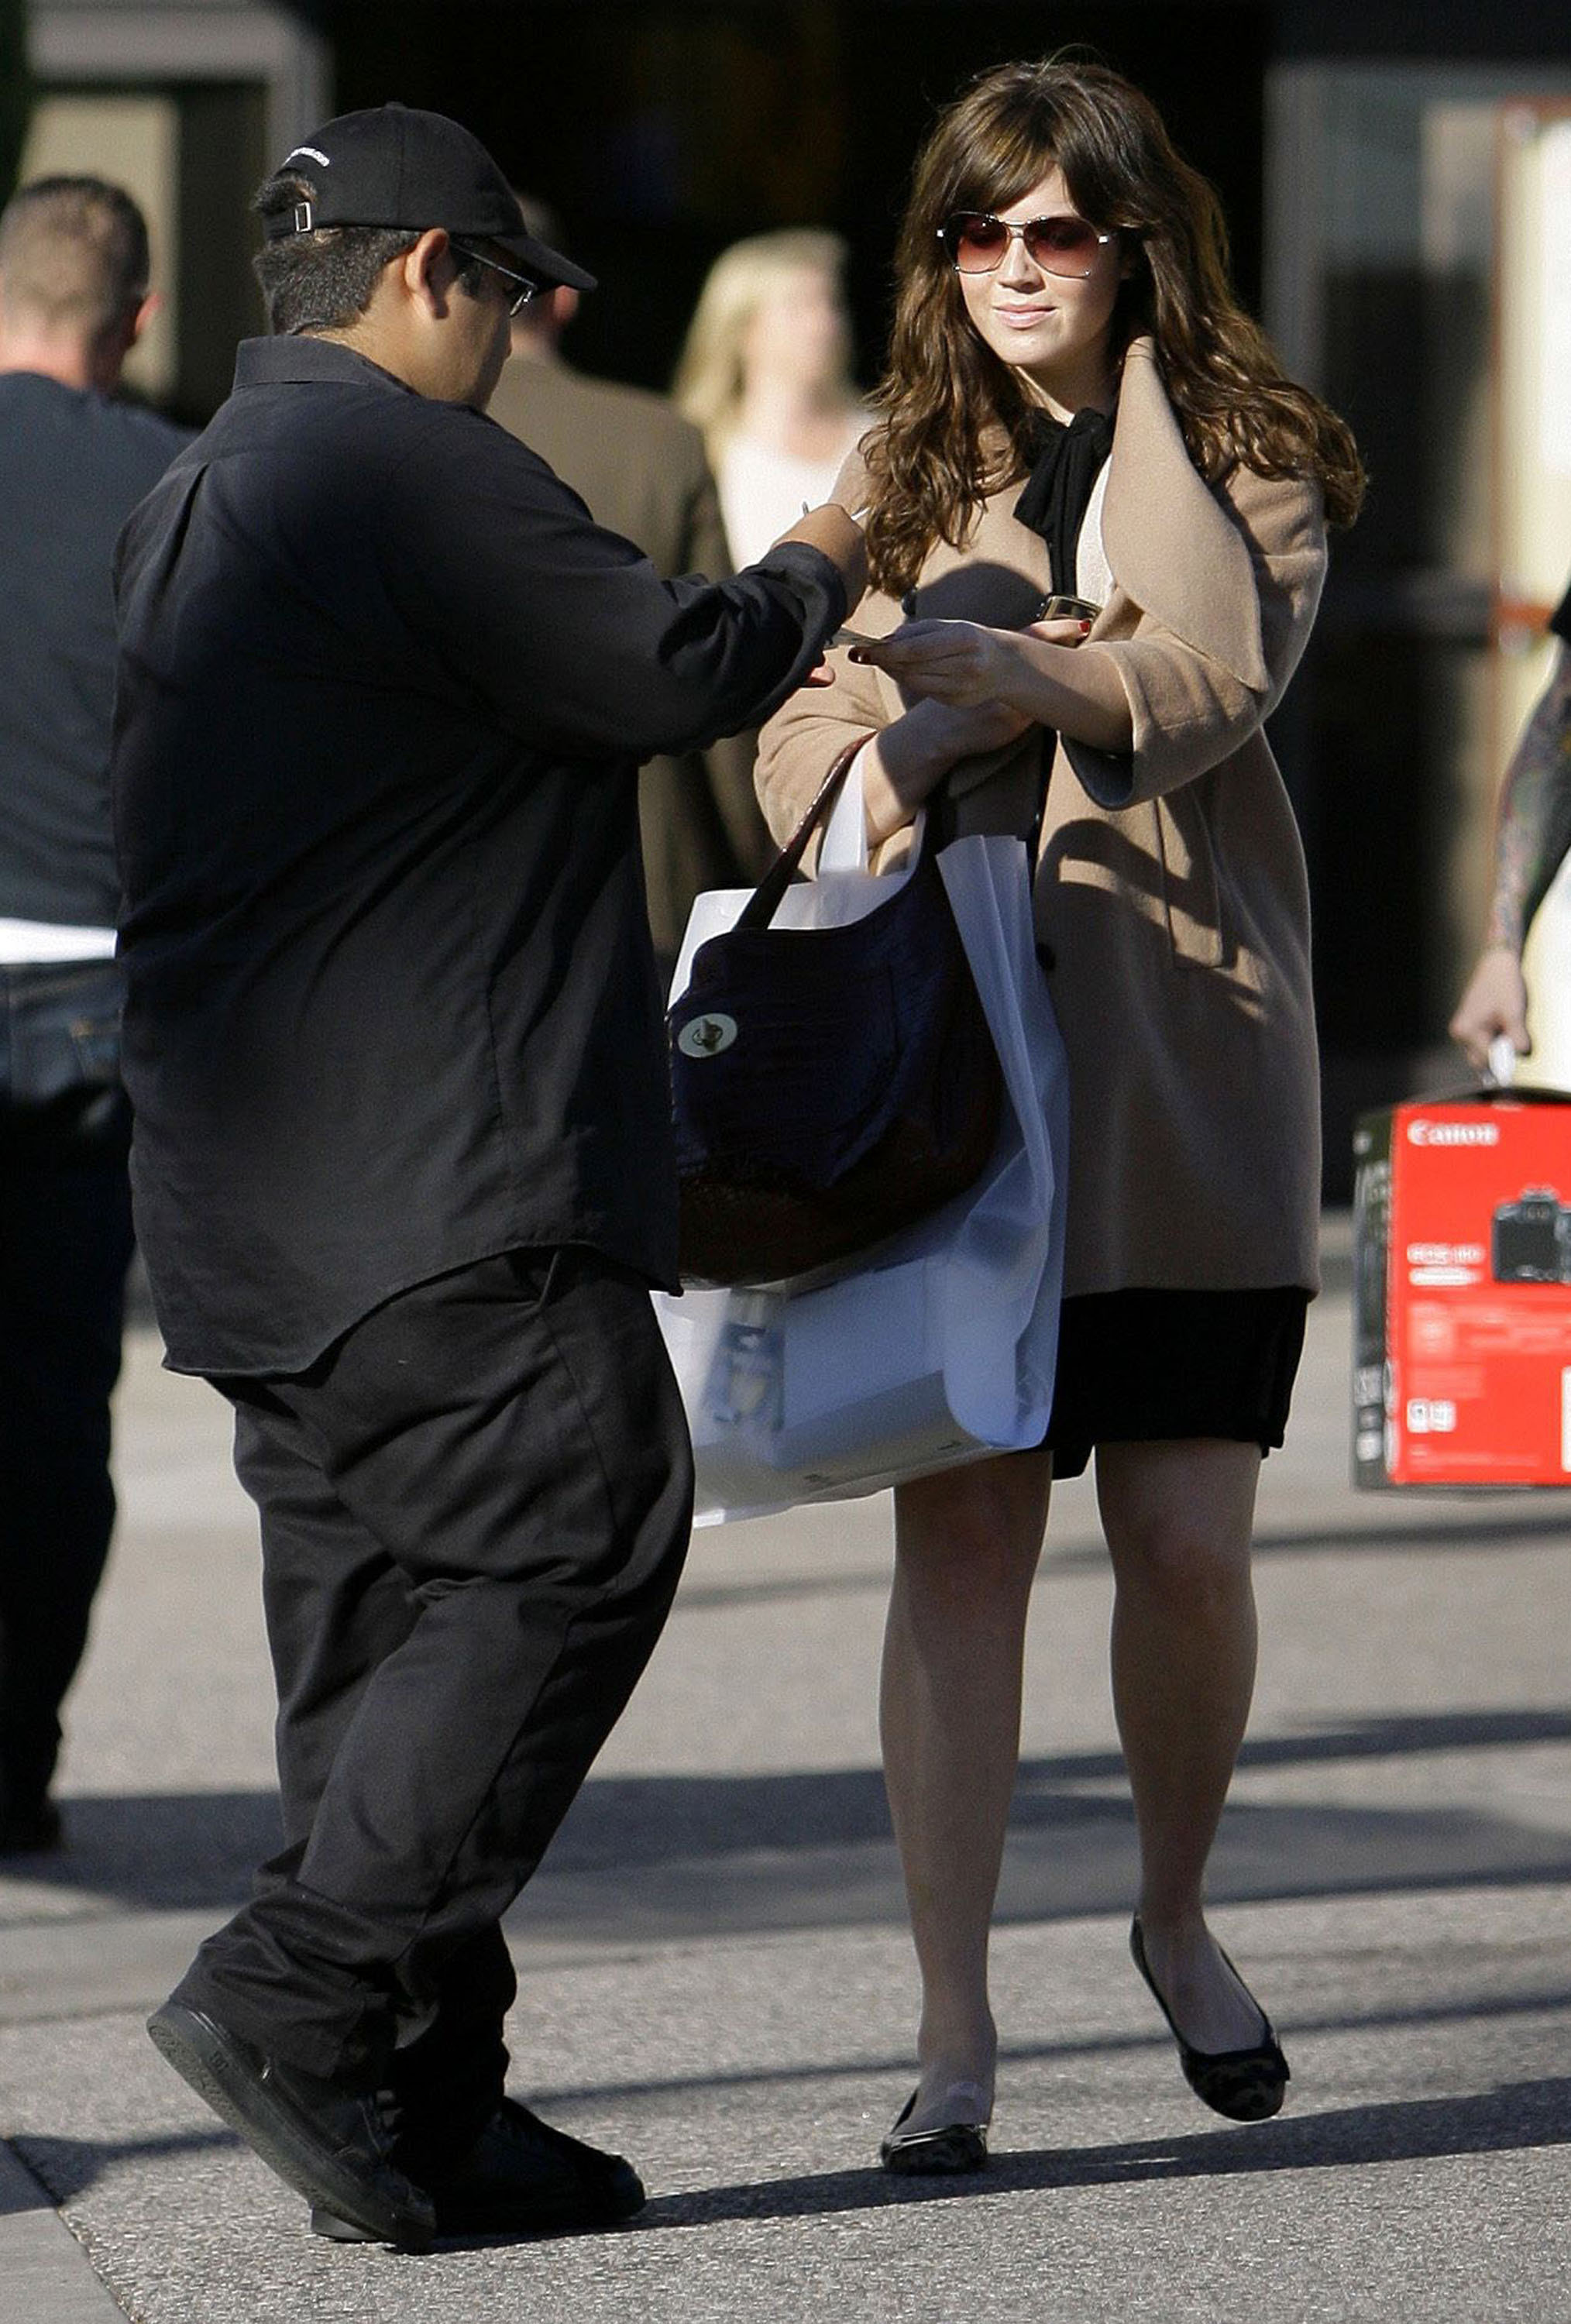 68291_celeb-city.eu_Mandy_Moore_out_and_about_in_West_Hollywood_10.12.2007_33_122_648lo.jpg